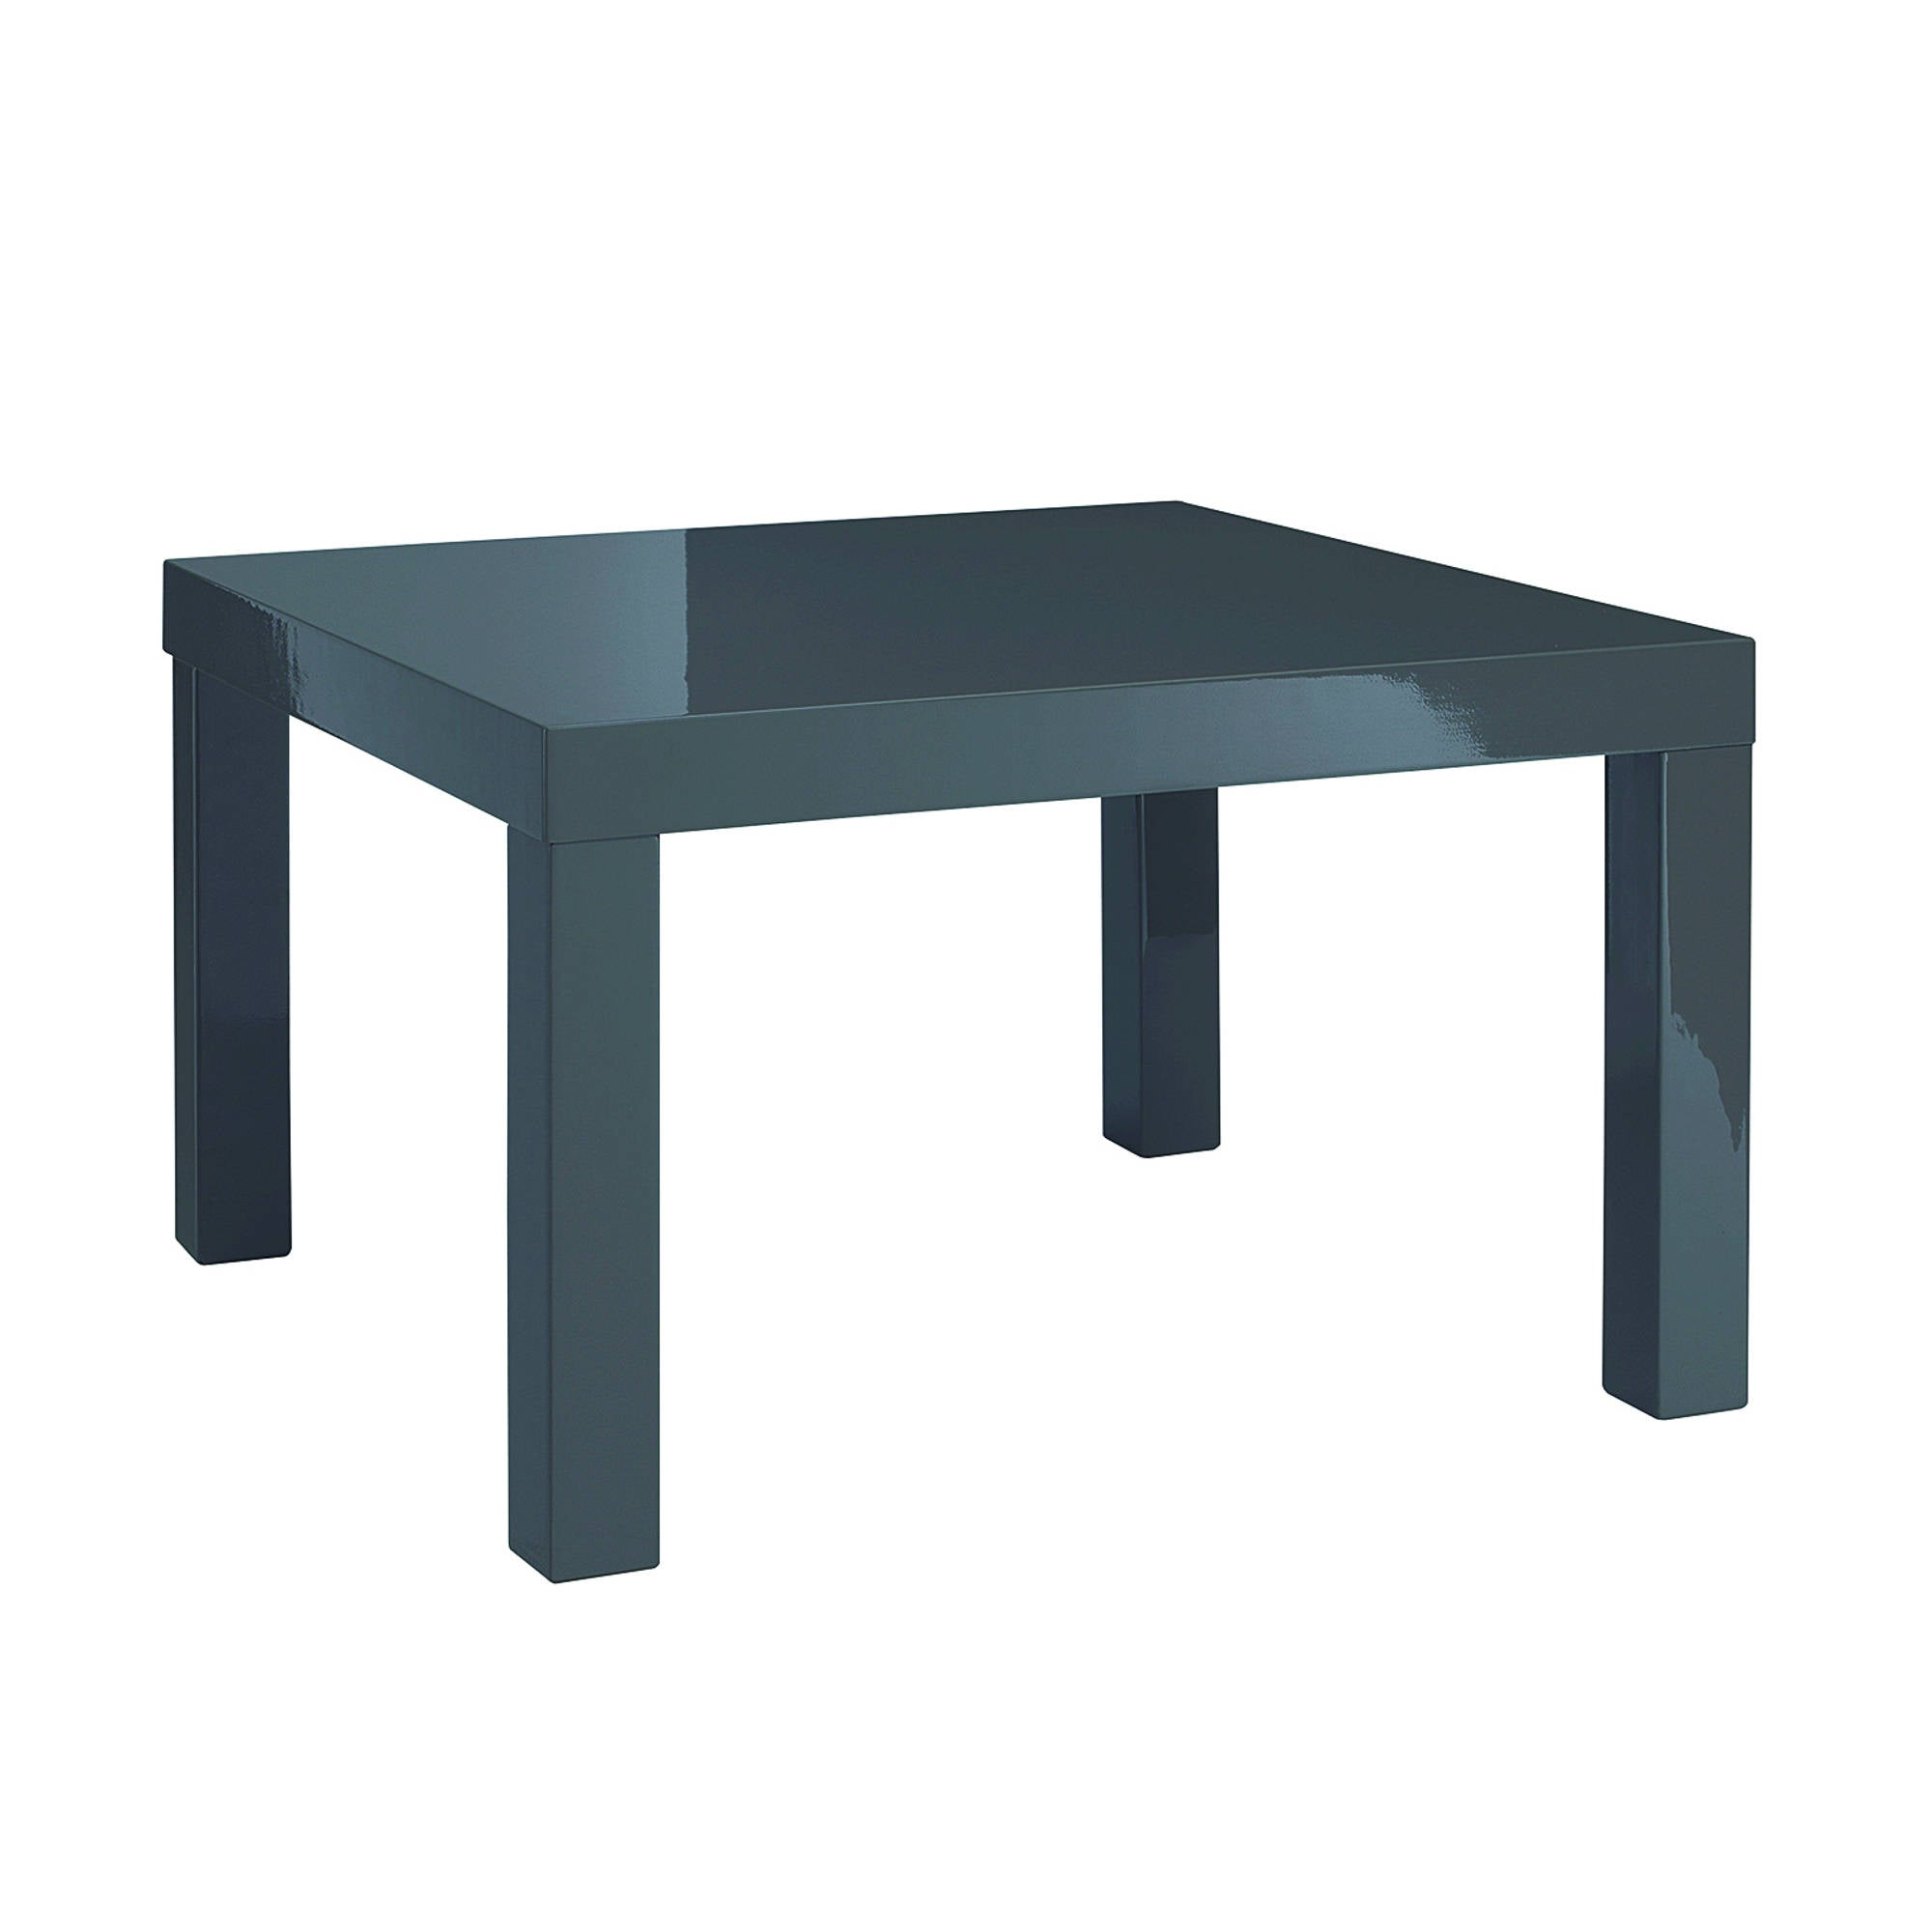 Sterling Lamp Table in Charcoal - Ezzo